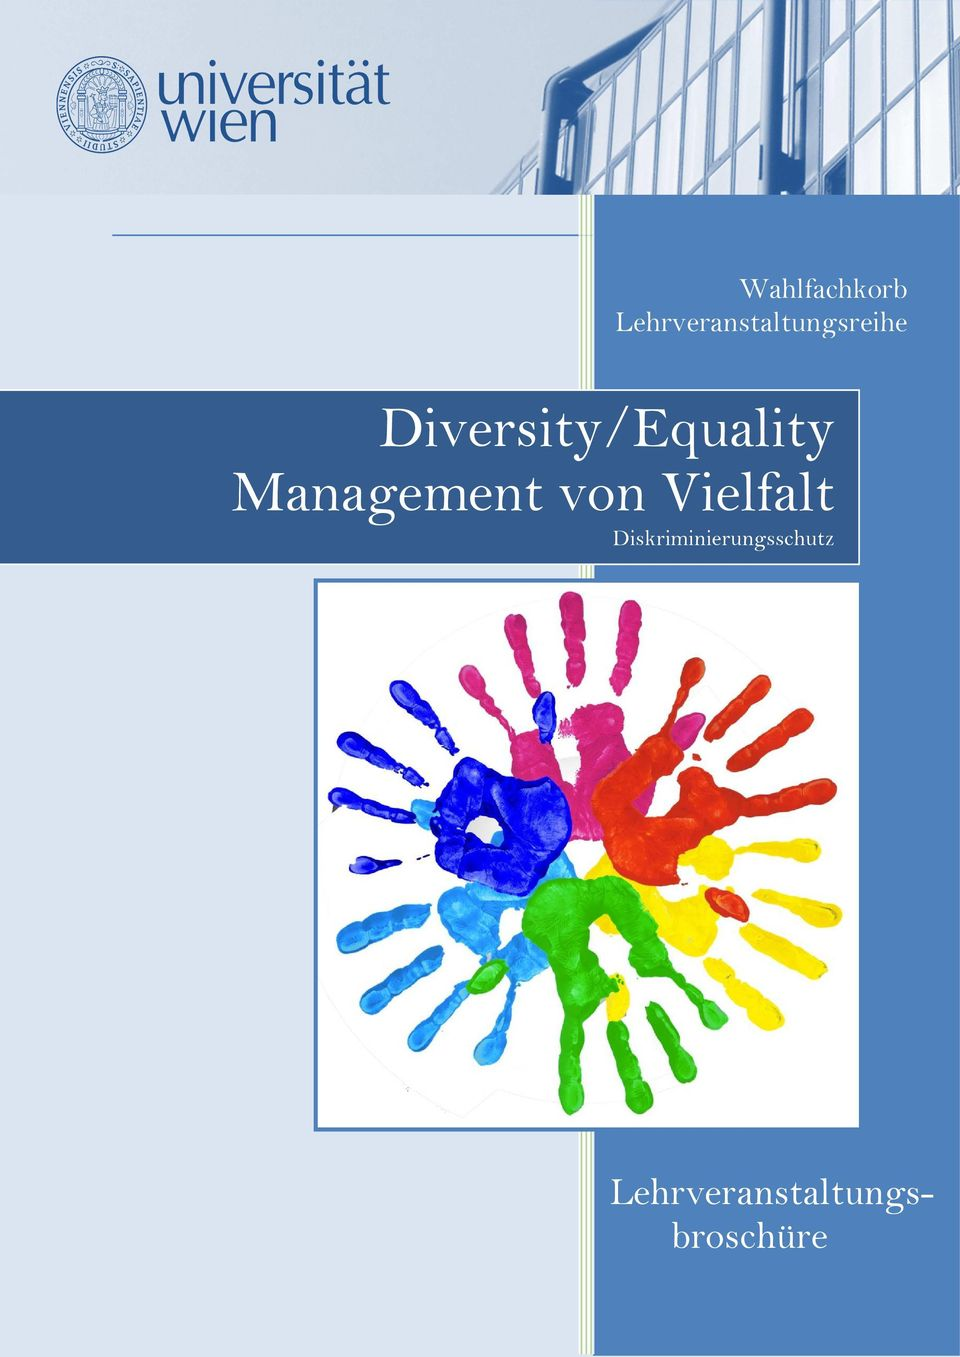 Diversity/Equality Management